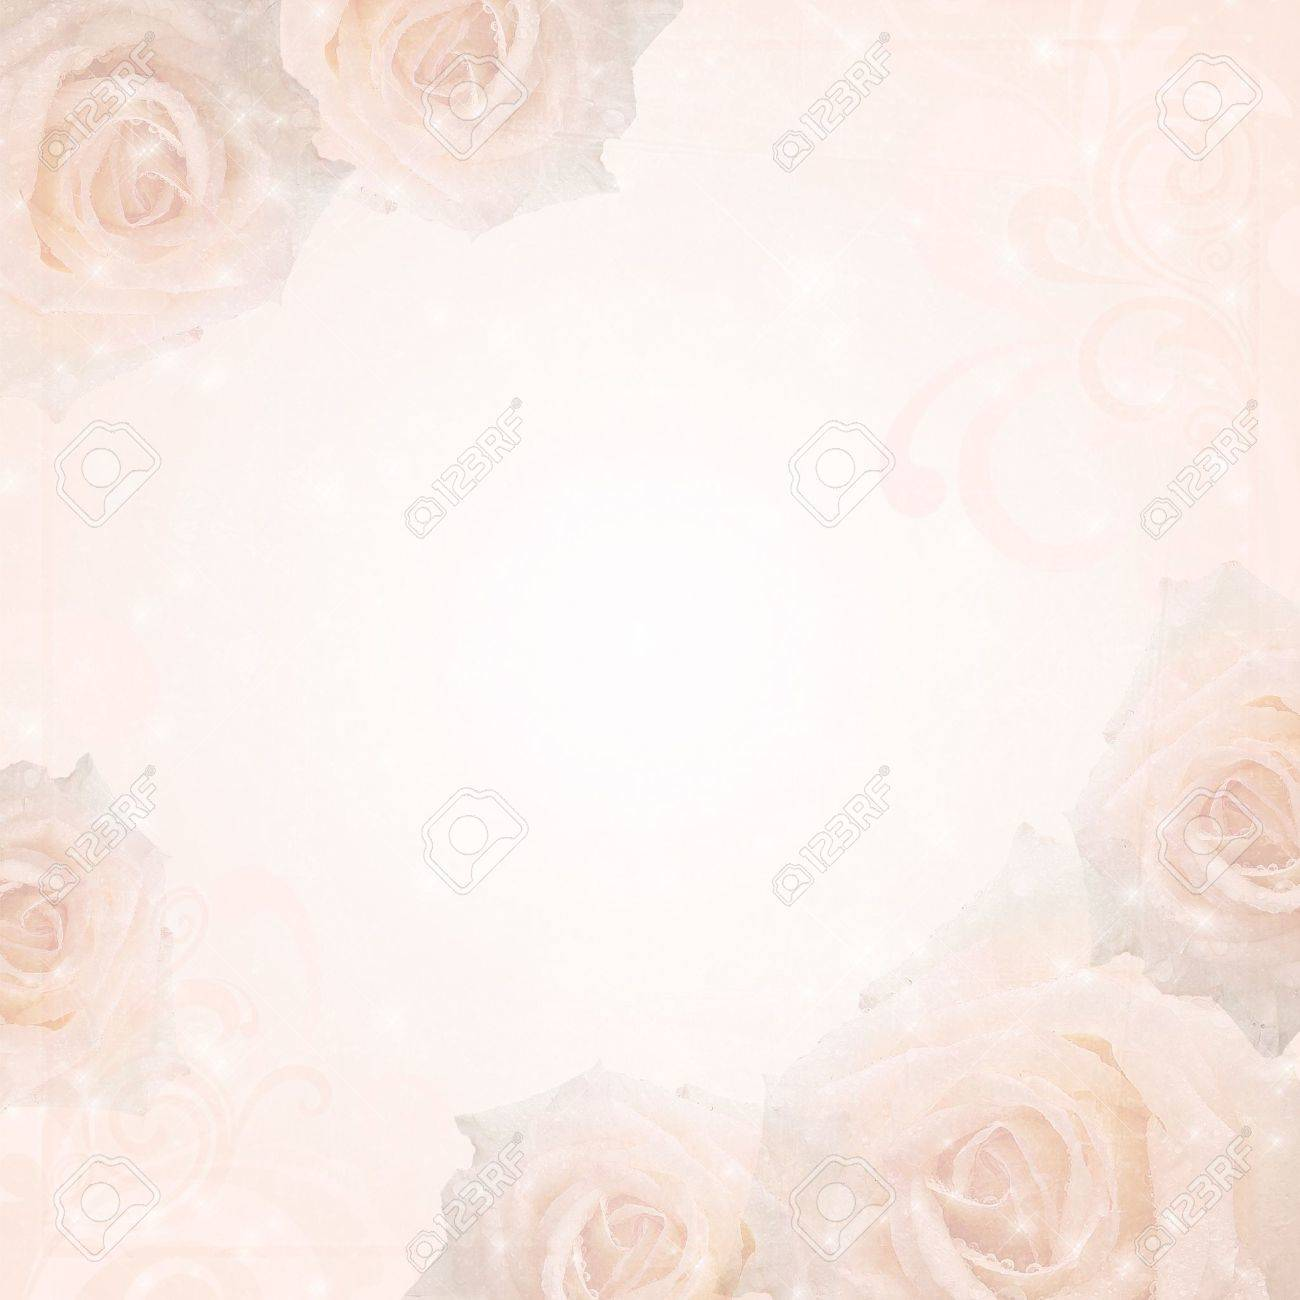 Wedding Background With Beige Roses And Floral Frame